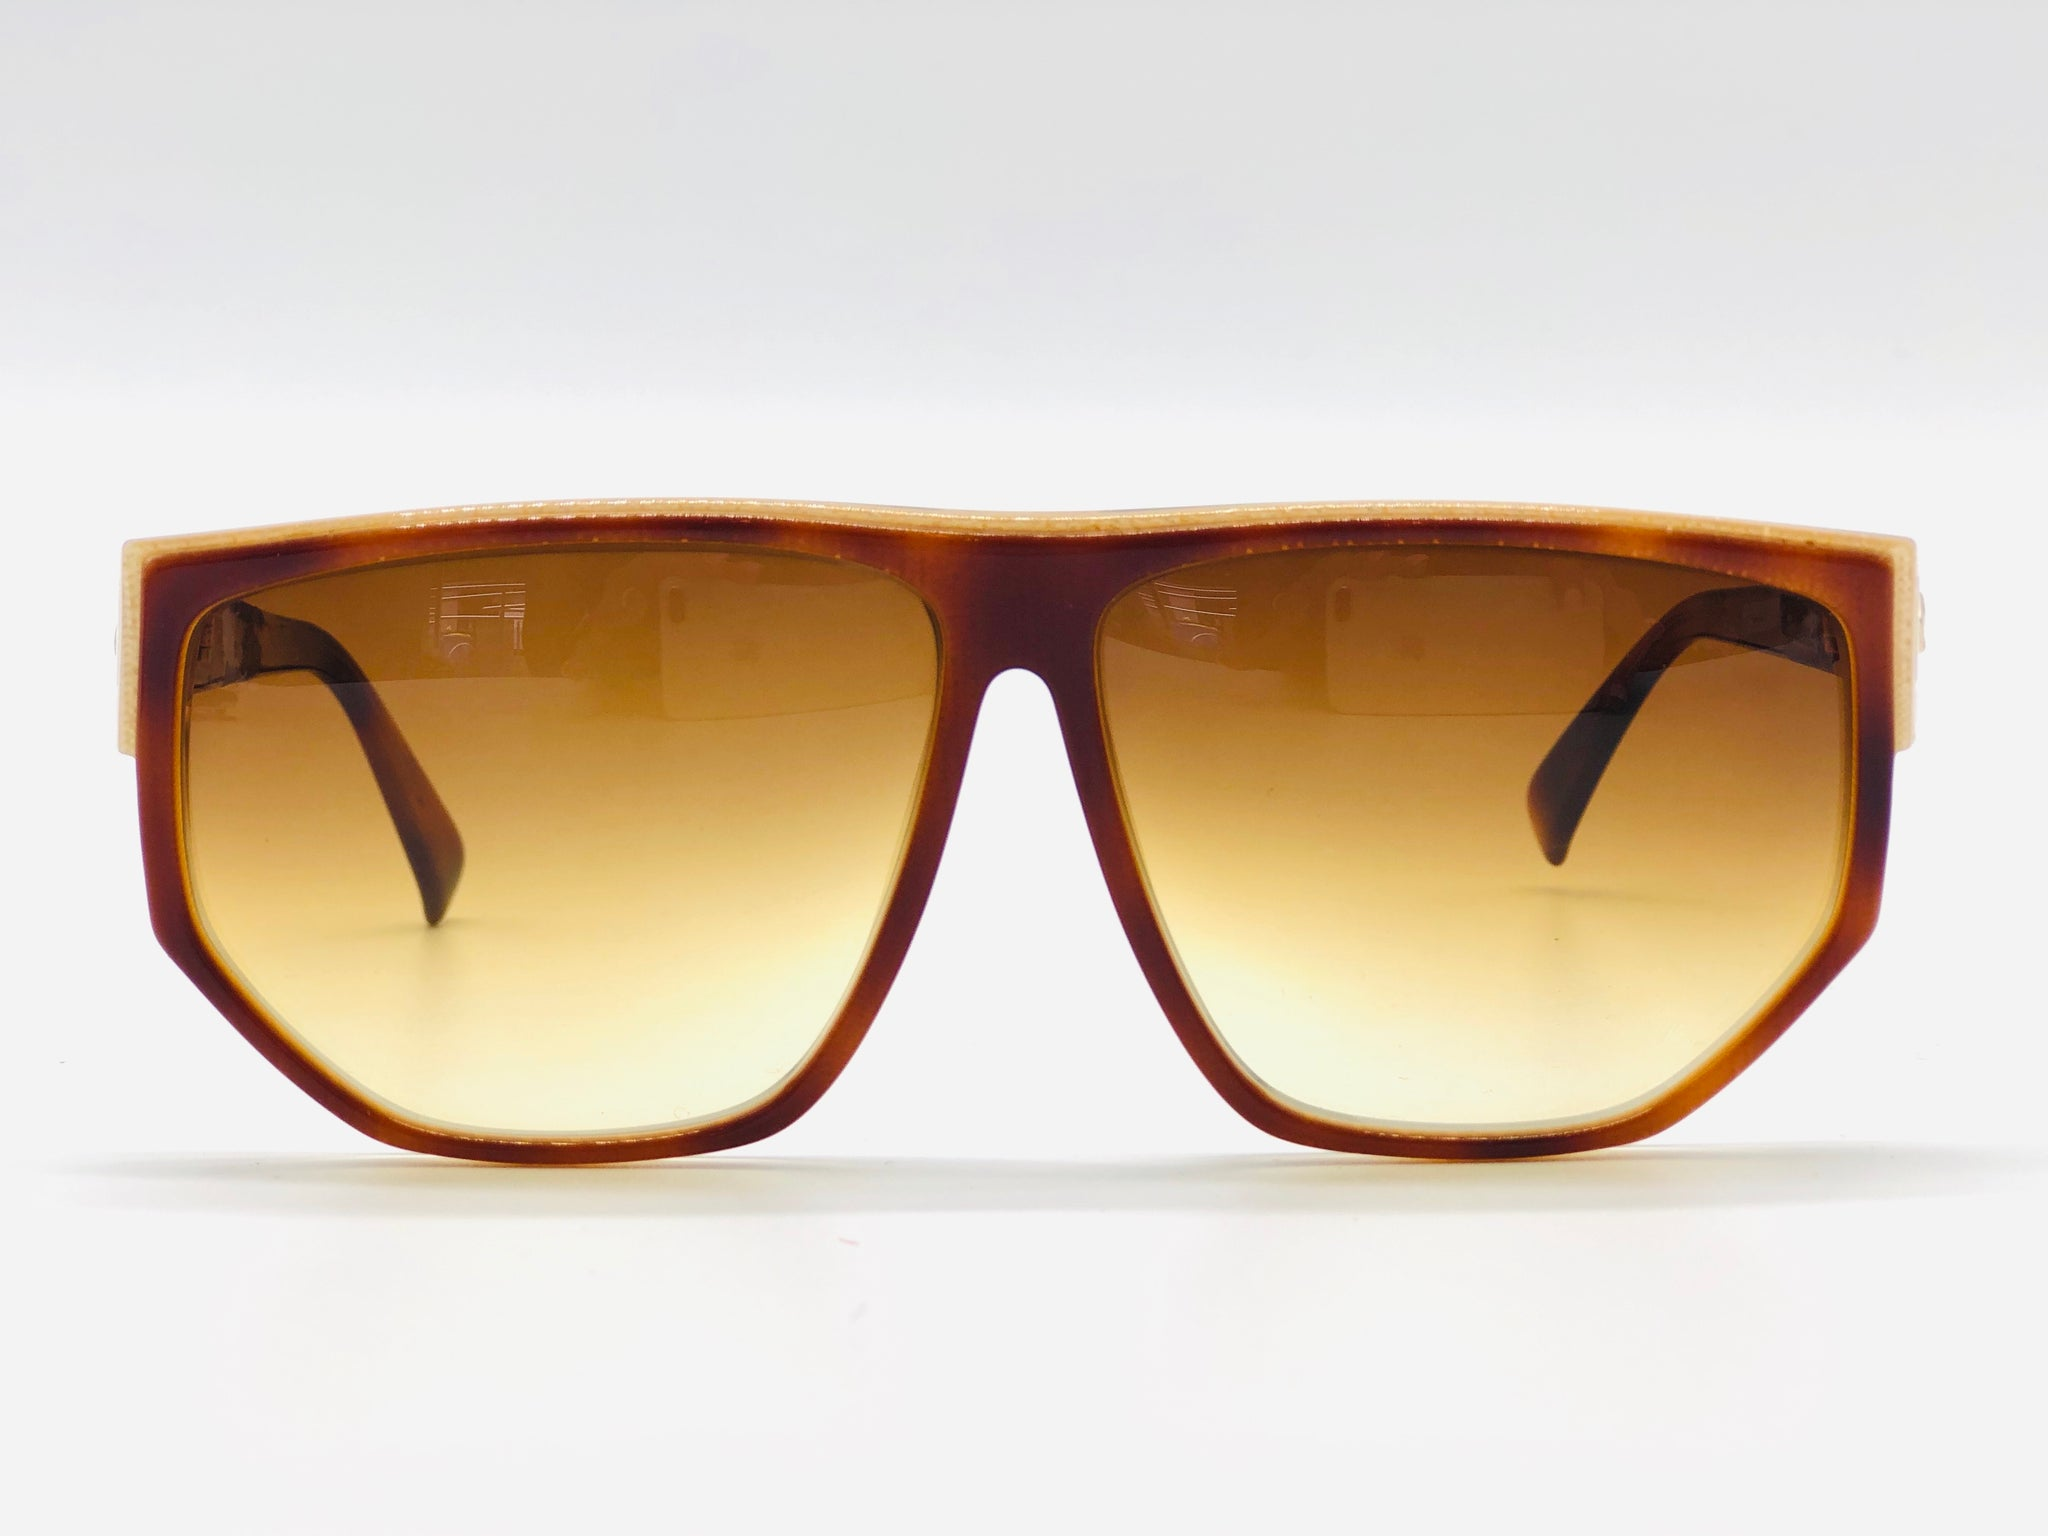 Vintage rare square sunglasses circa 1978 Real Gold trim